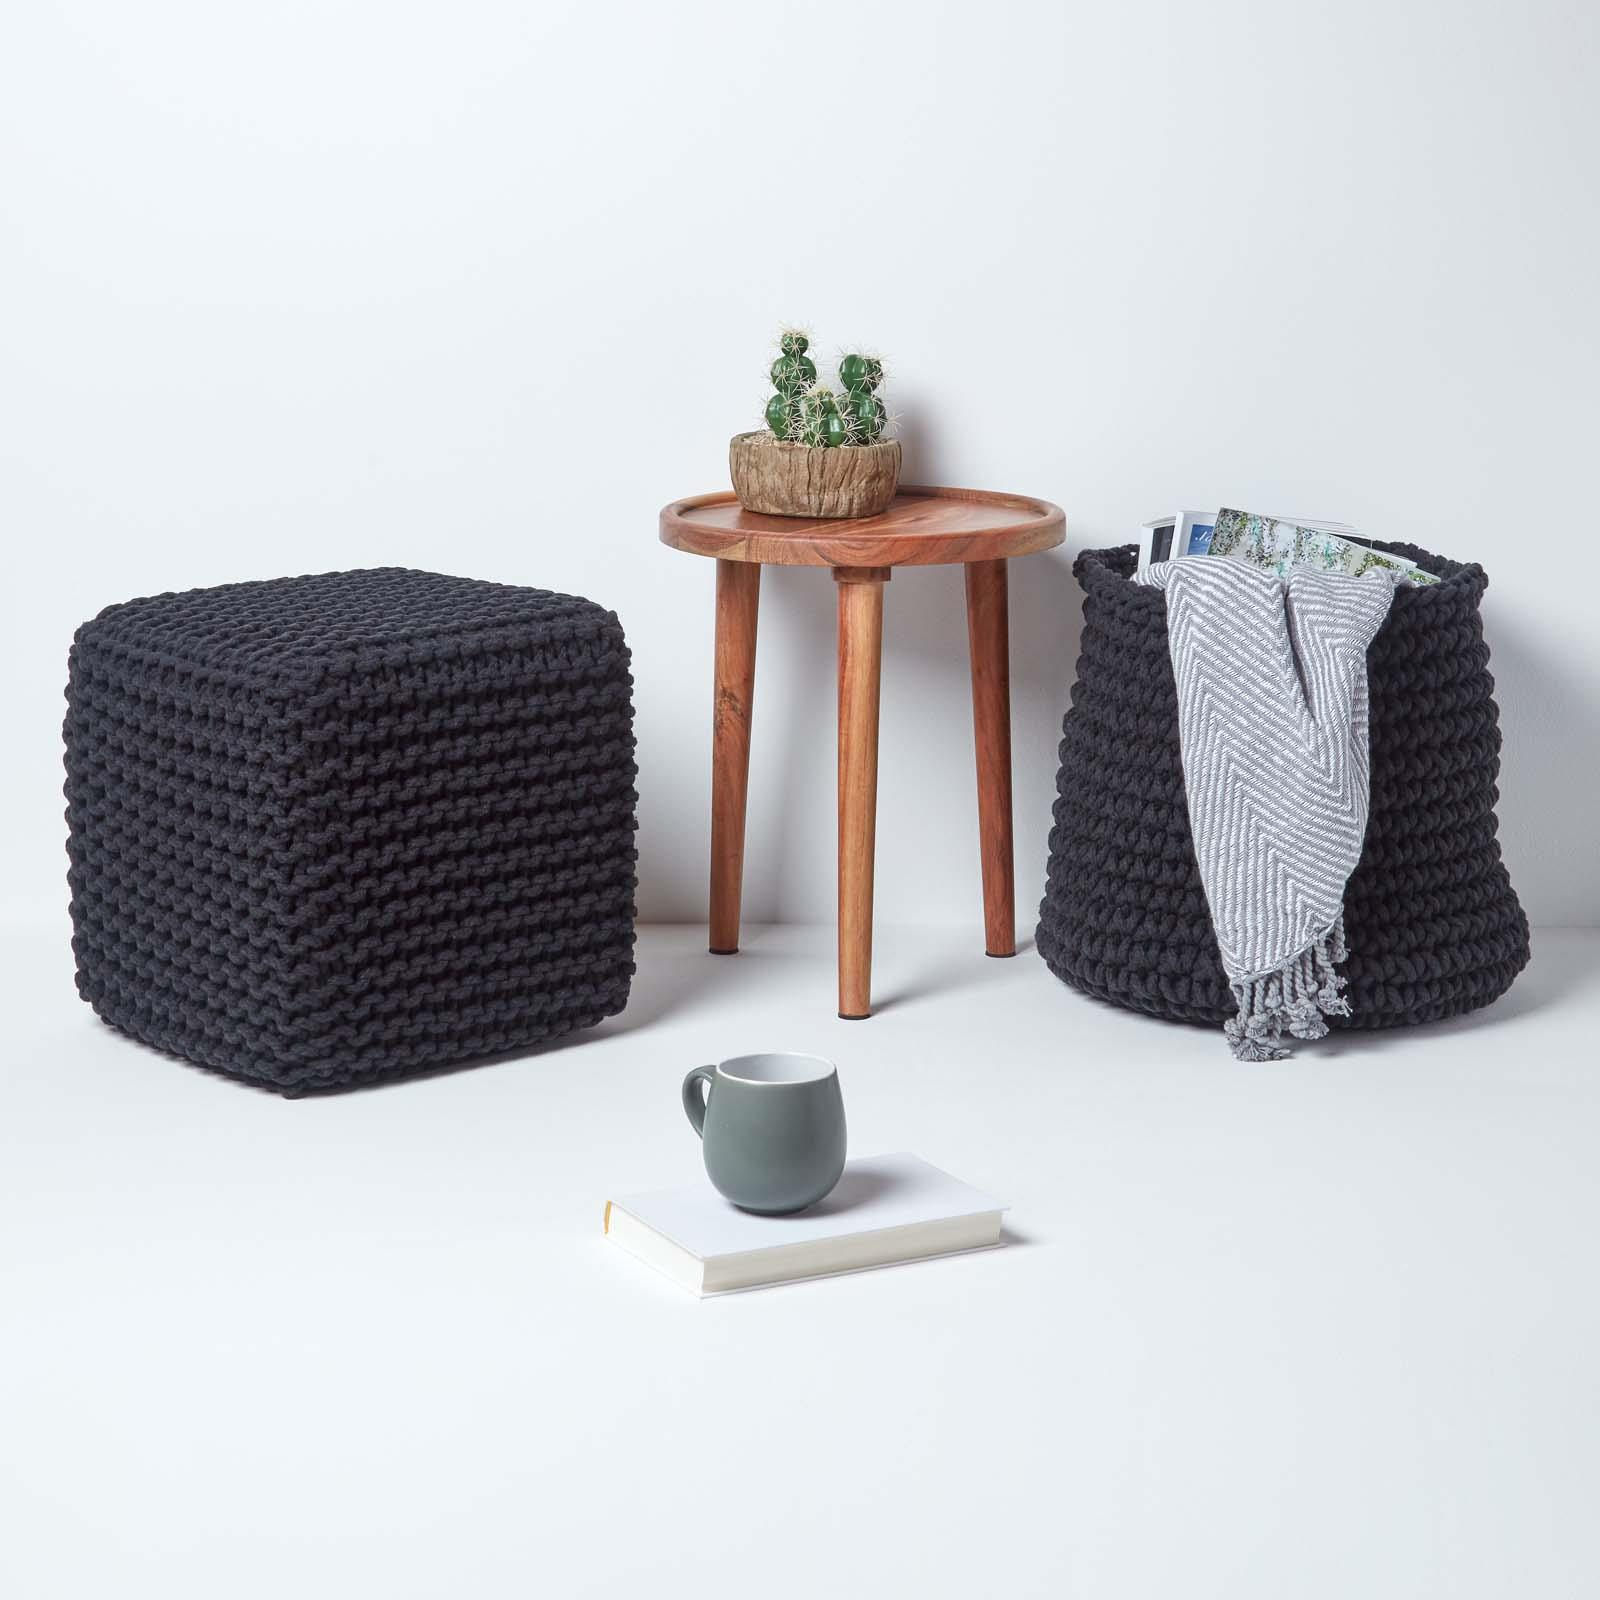 Hand-Knitted-100-Cotton-Pouffes-Round-Sphere-Or-Cube-Square-Chunky-Footstools thumbnail 14